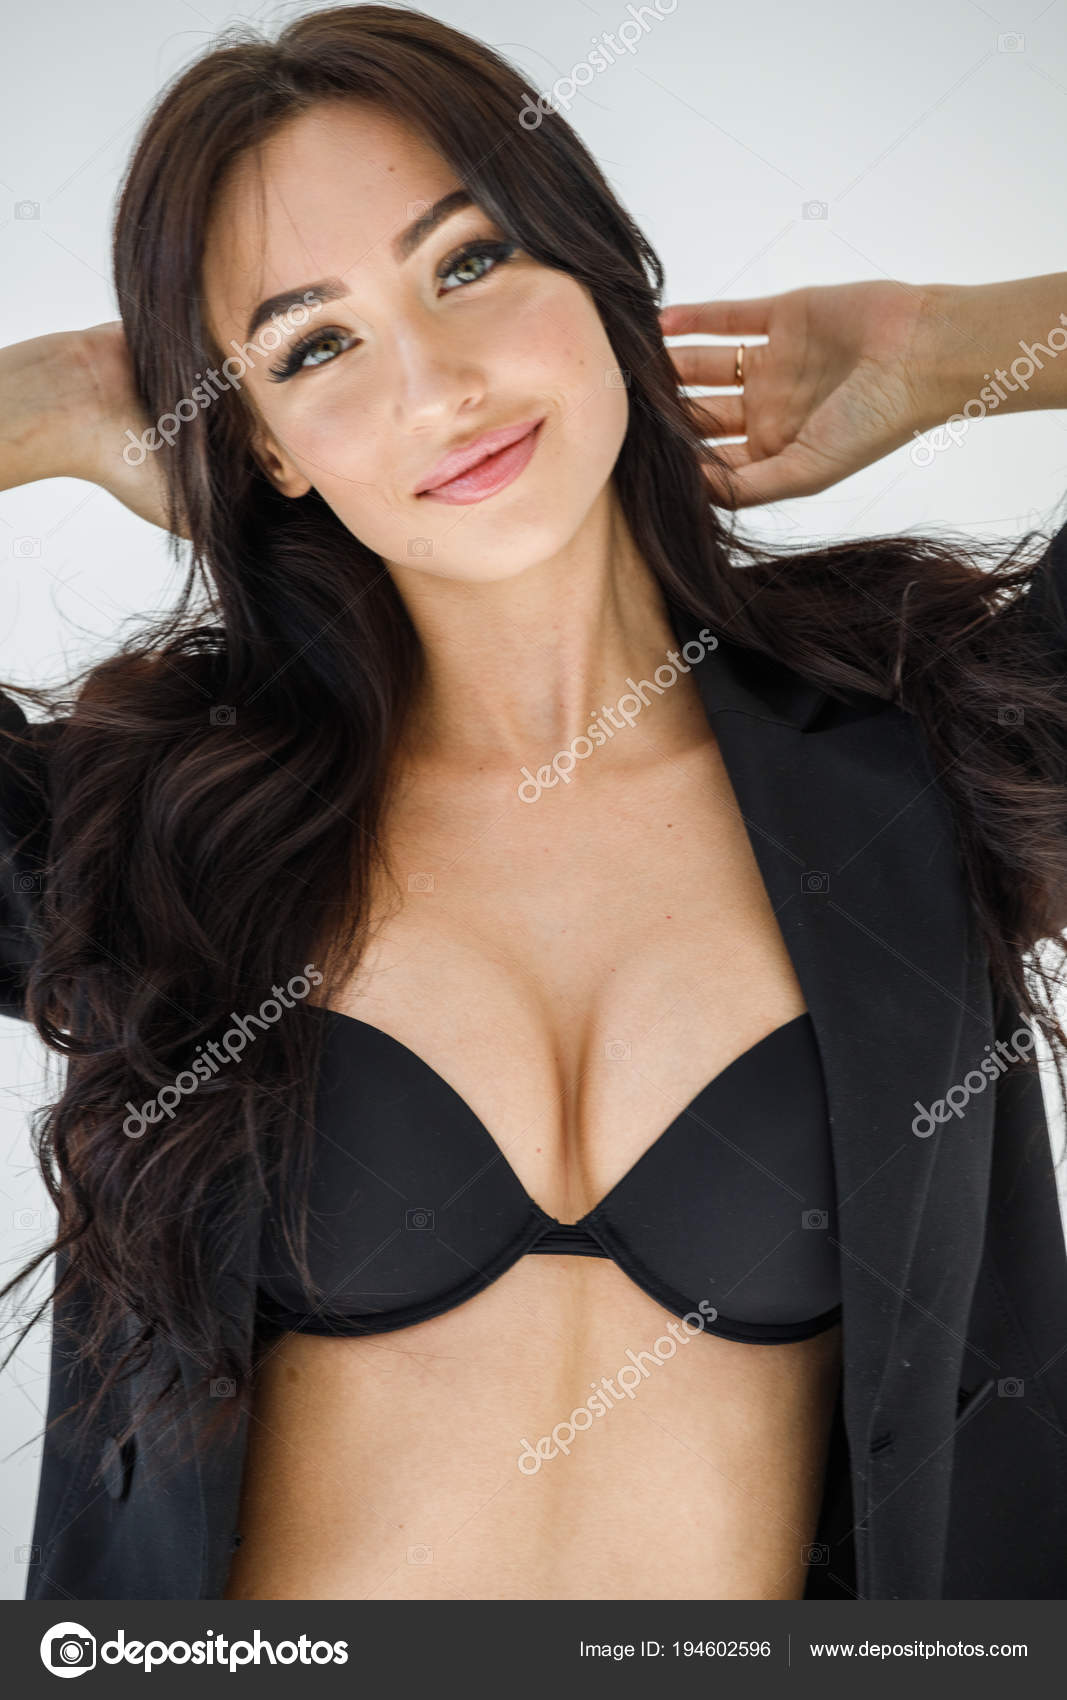 280bfc695b4 Studio Portrait Young Brunette Girl Wearing Sexy Black Lingerie Black —  Stock Photo